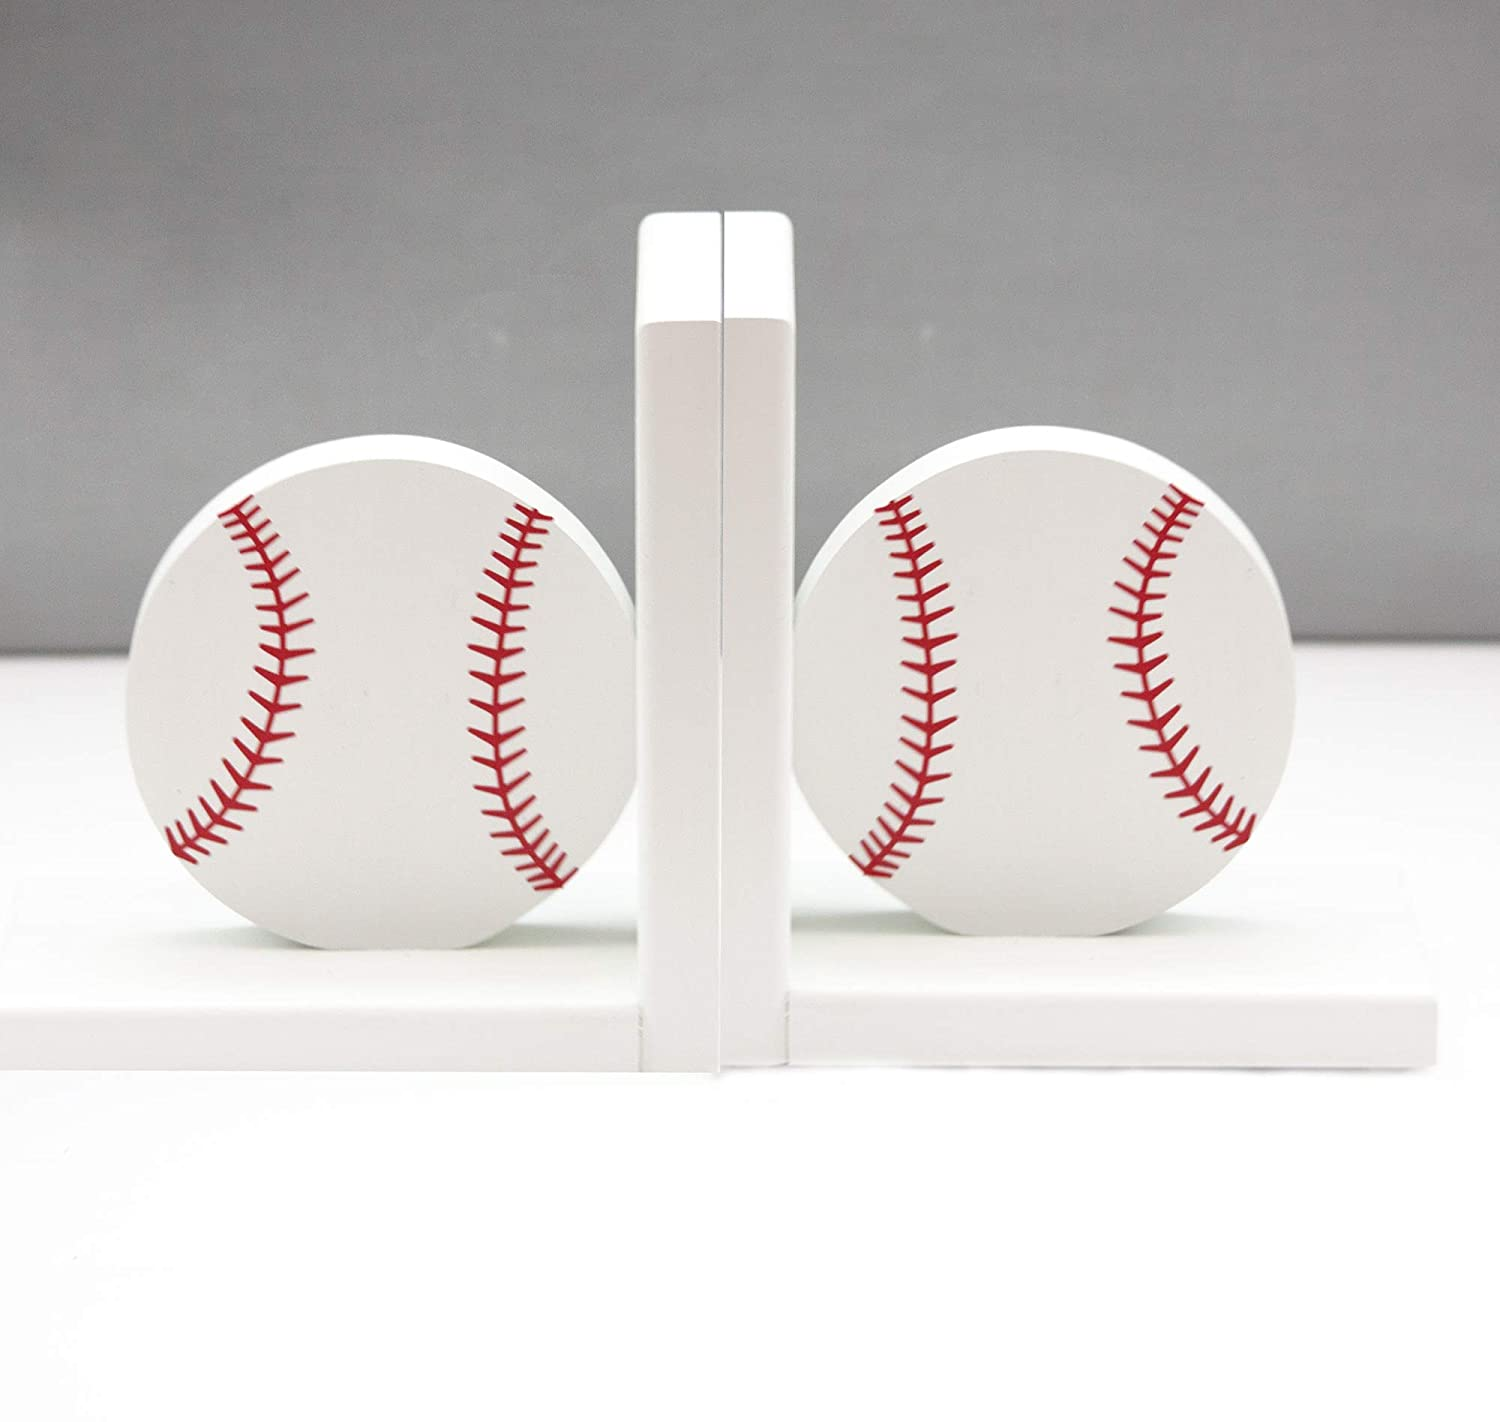 Baseball Bookends handmade in the US Max 52% OFF sports for themed a perfect 55% OFF